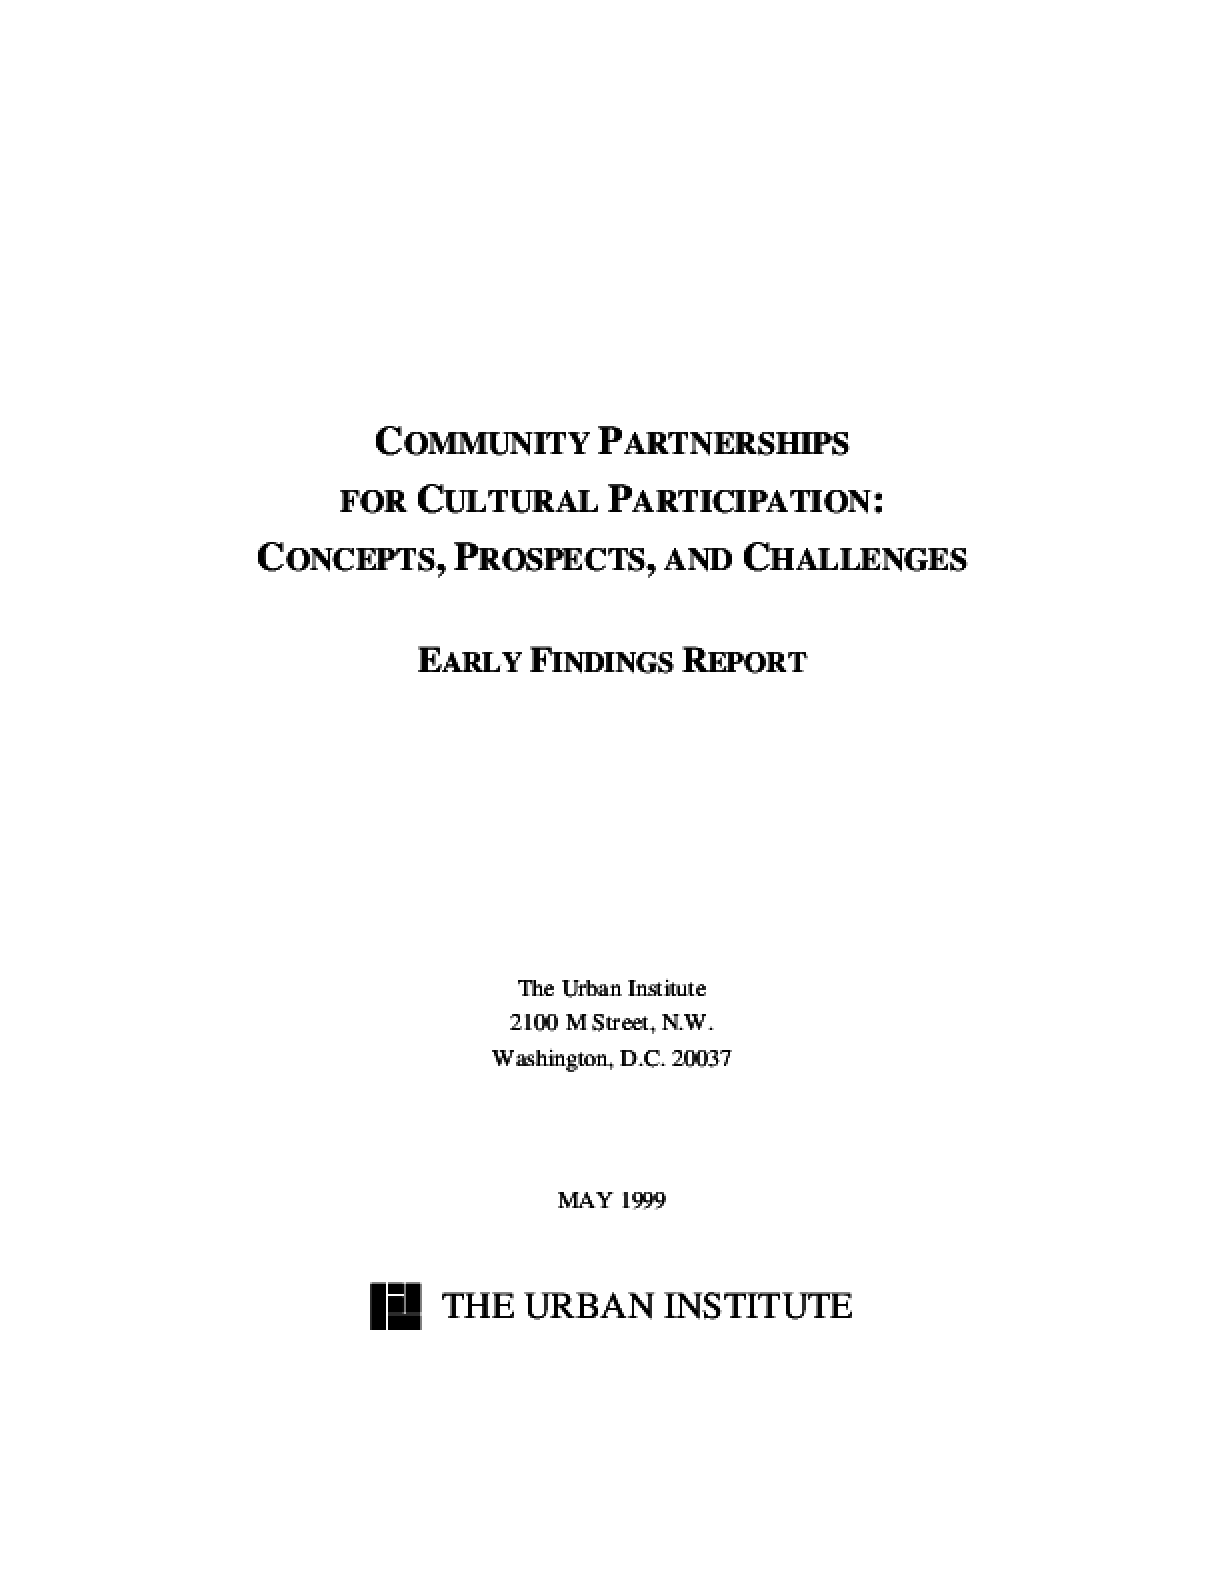 Community Partnerships for Cultural Participation: Concepts, Prospects, and Challenges